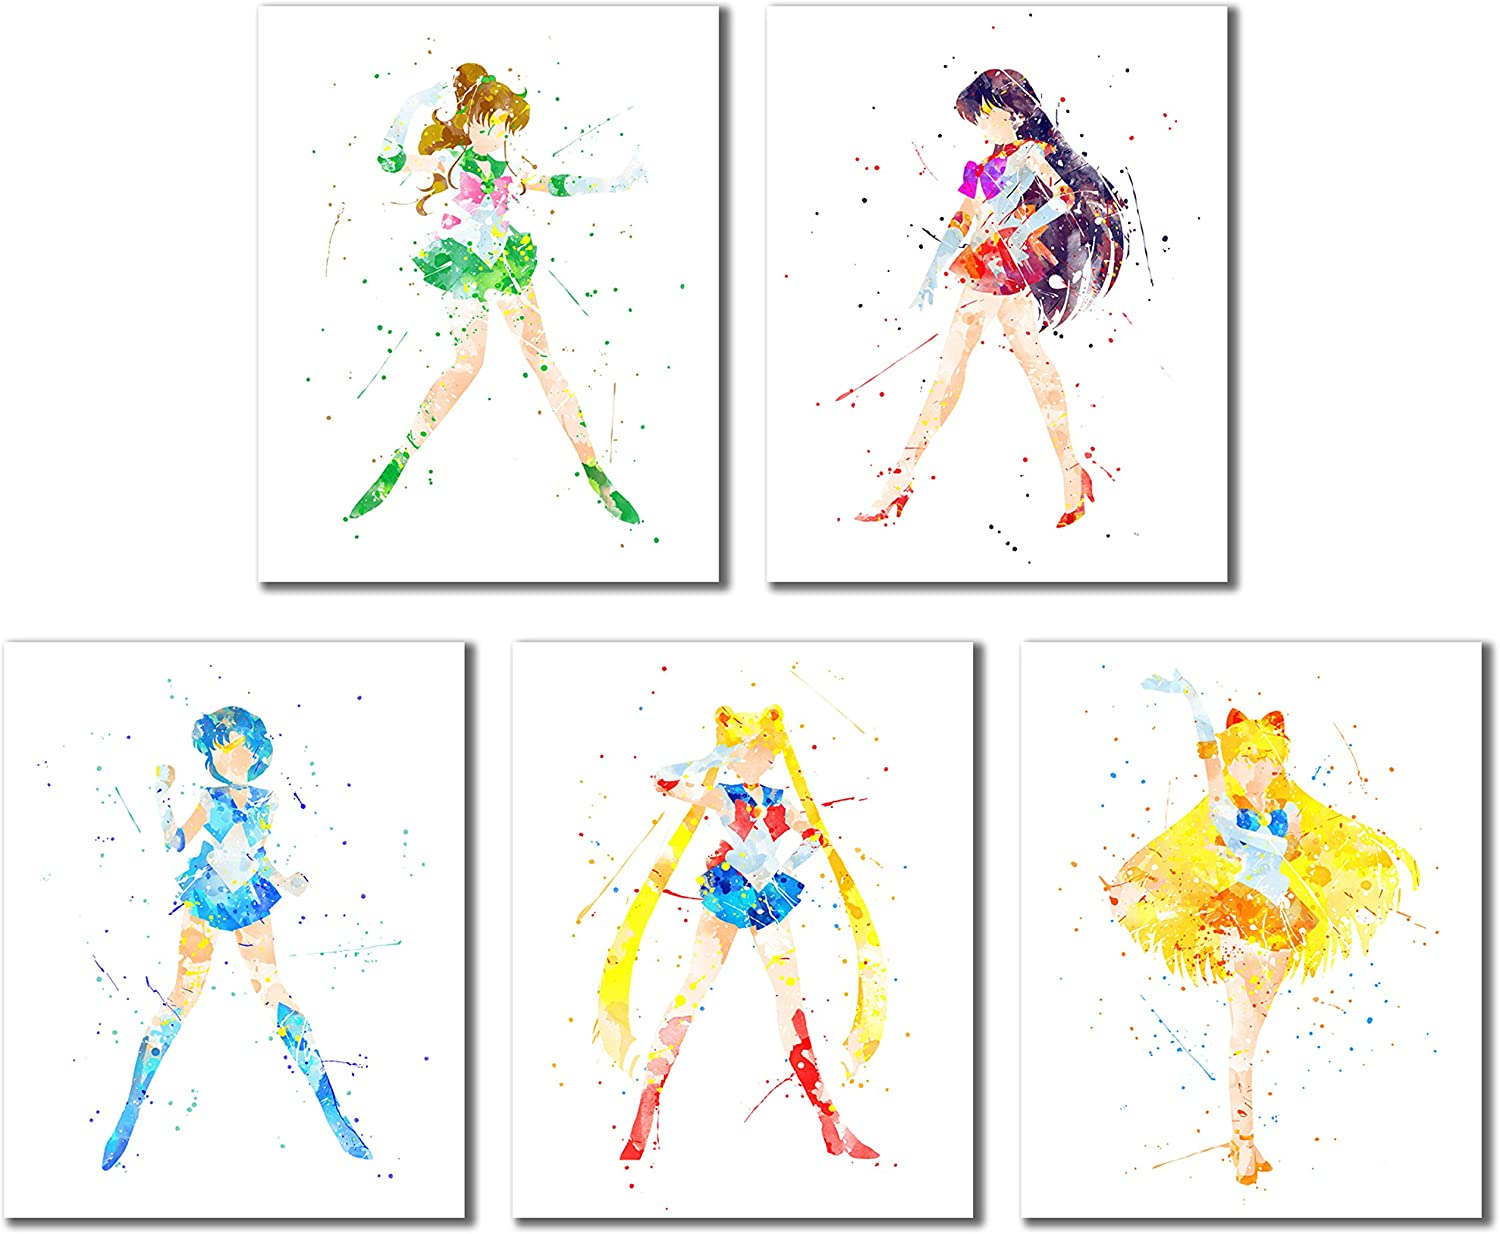 Sailor Moon Watercolor Art Prints - Set of 5 (8 inches x 10 inches) Wall Decor Photos - Sailor Jupiter Mars Venus Mercury